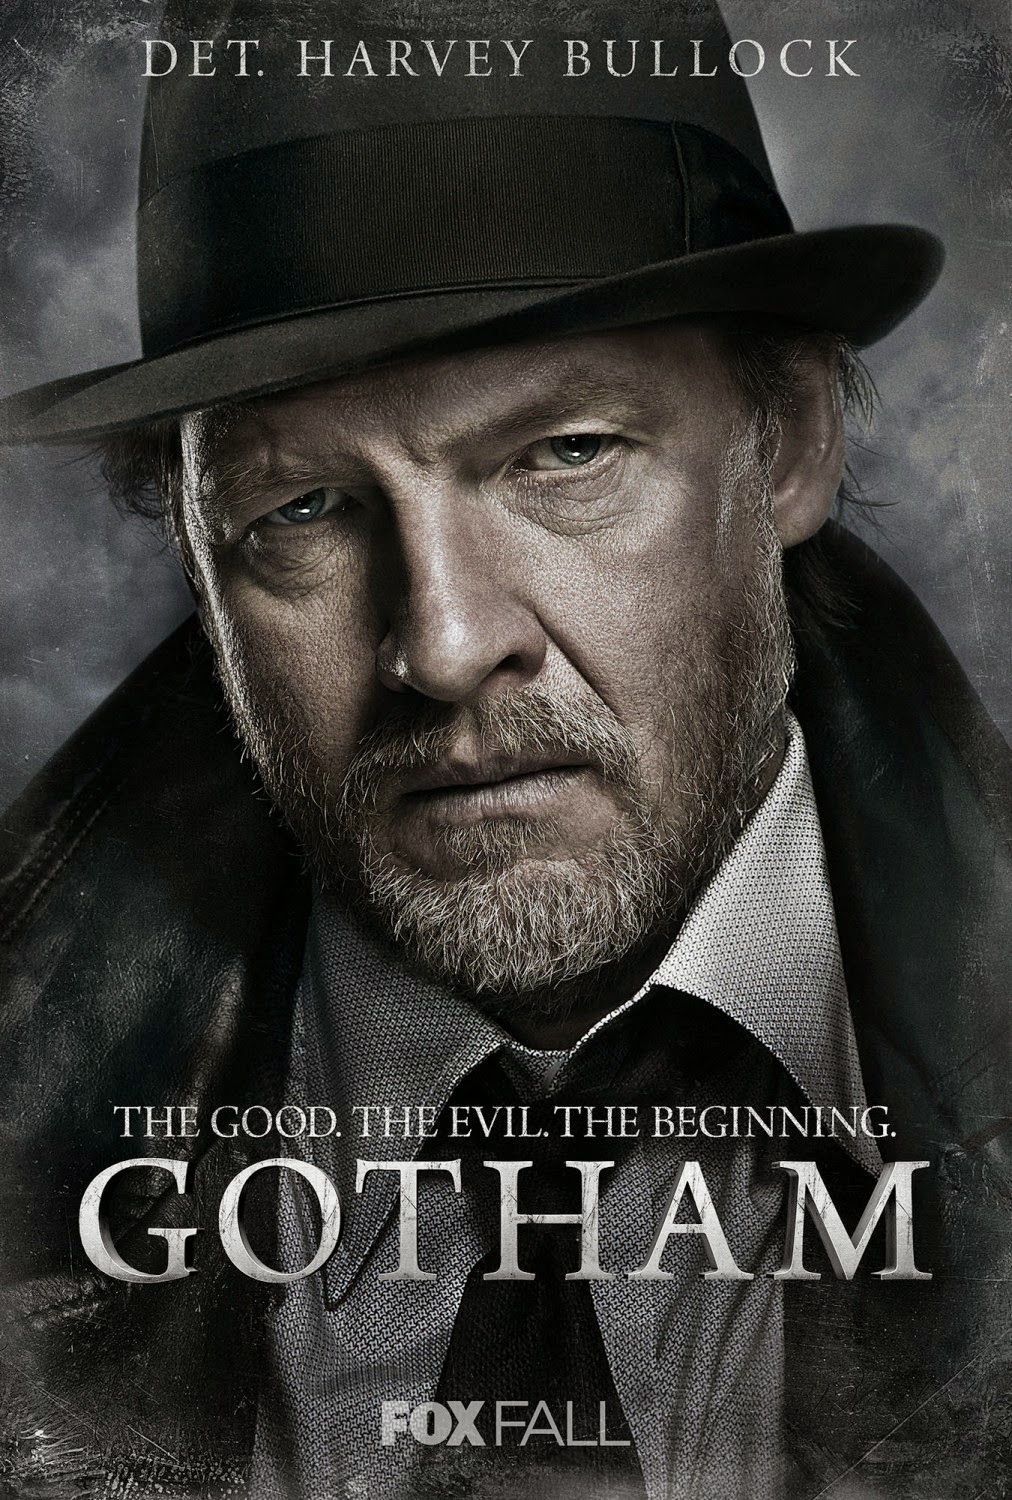 "Gotham ""The Good. The Evil. The Beginning."" Character TV Poster Set - Donal Logue as Harvey Bullock"